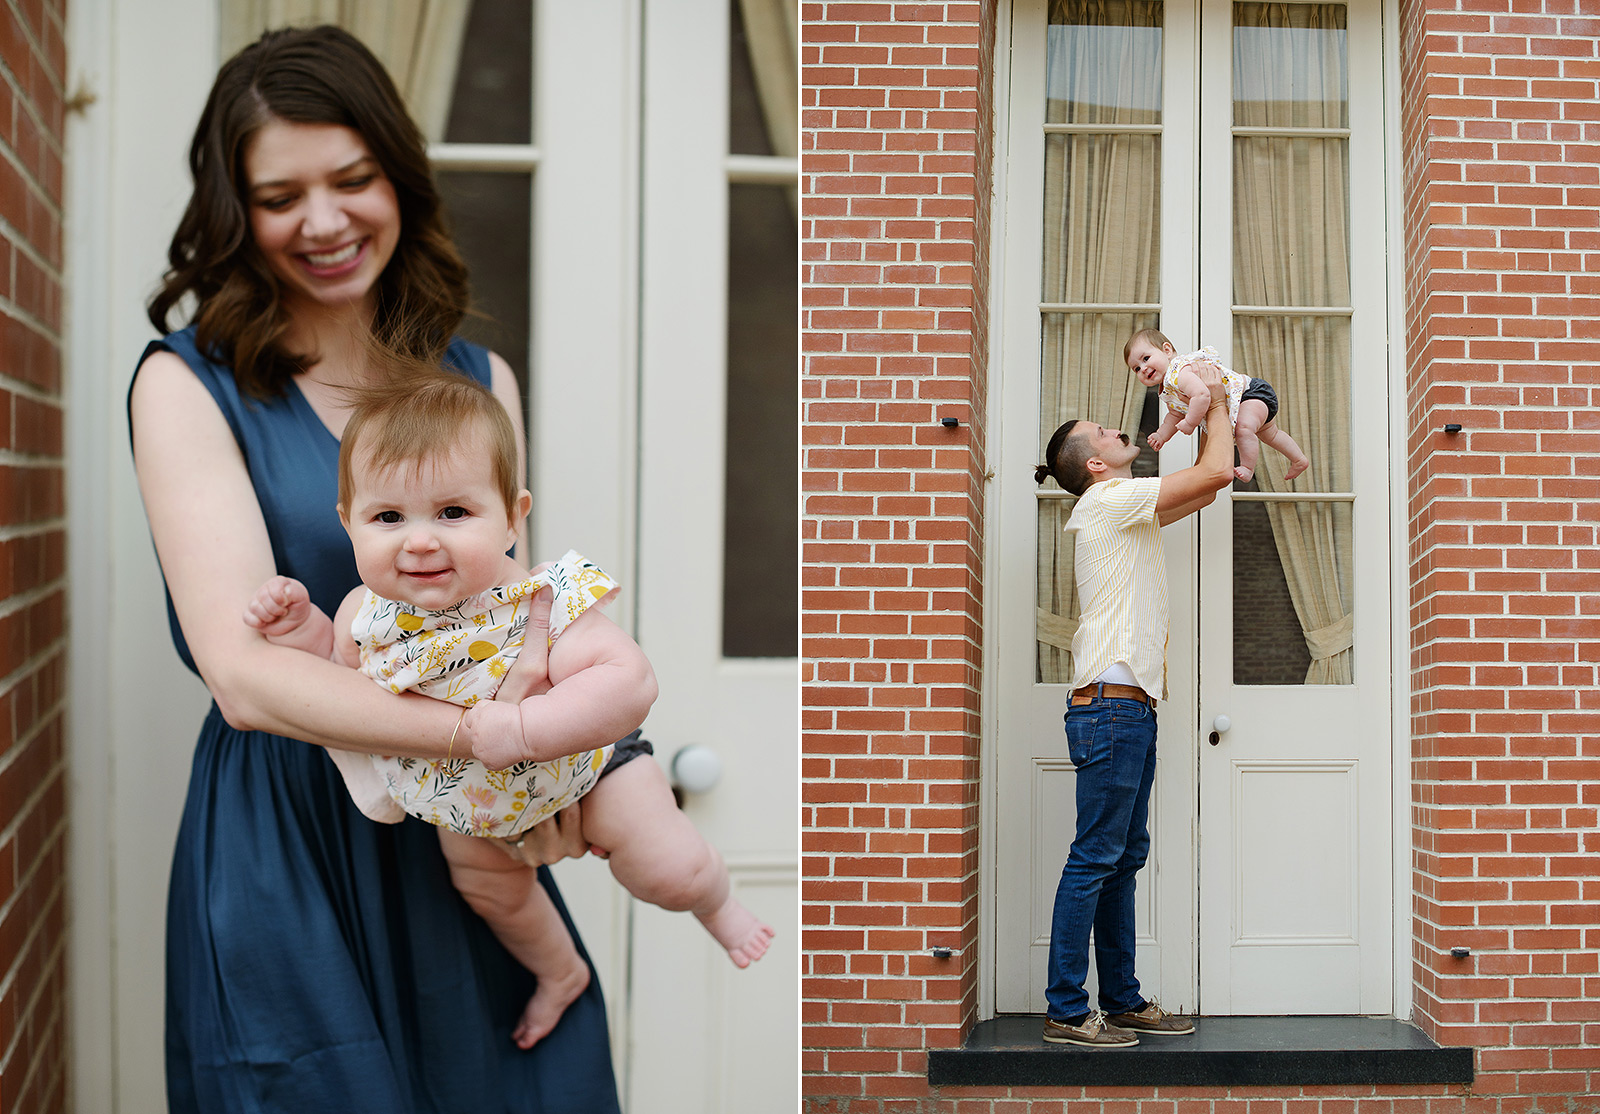 Mom and dad holding baby daughter in front of white doors and brick wall in Old Sacramento